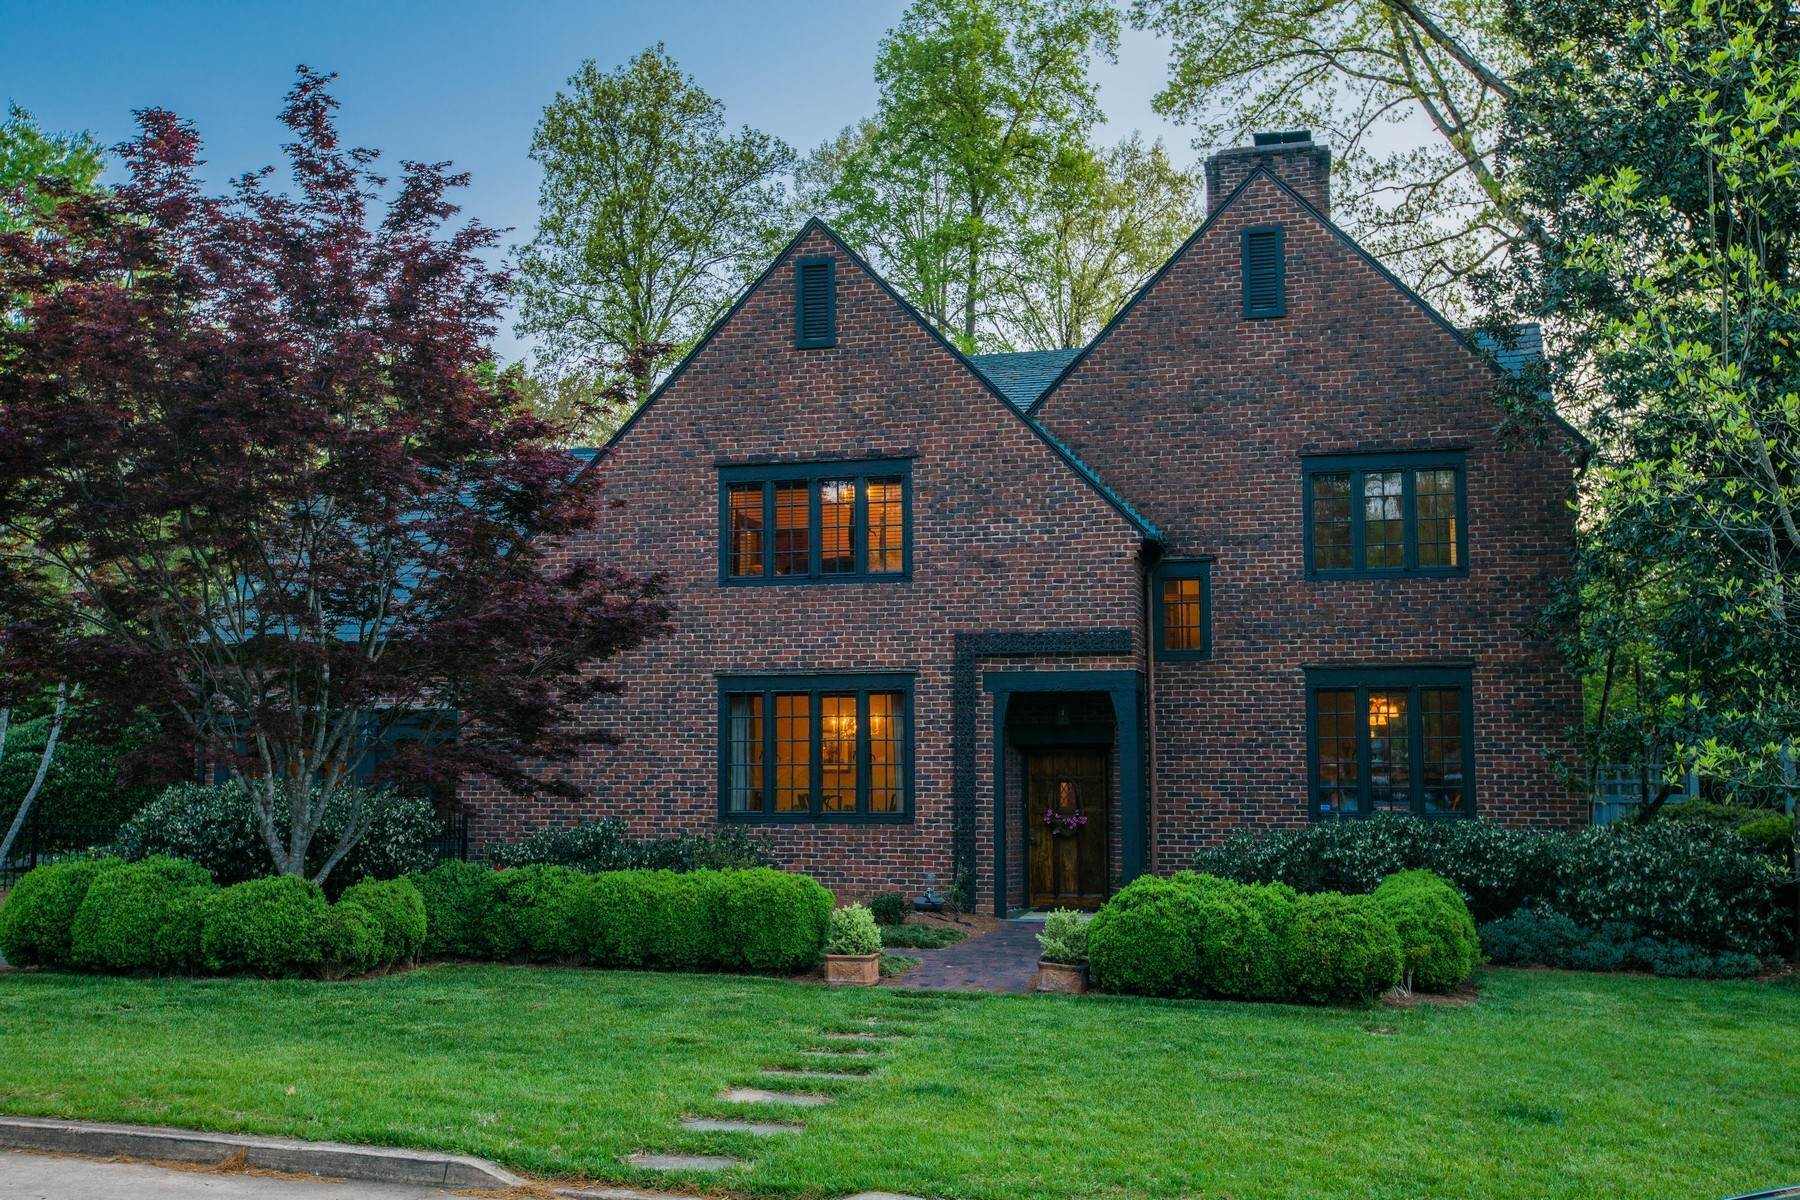 Single Family Homes for Sale at Elegant Tudor Home In Sequoyah Hills 3711 Westerwood Drive Knoxville, Tennessee 37919 United States